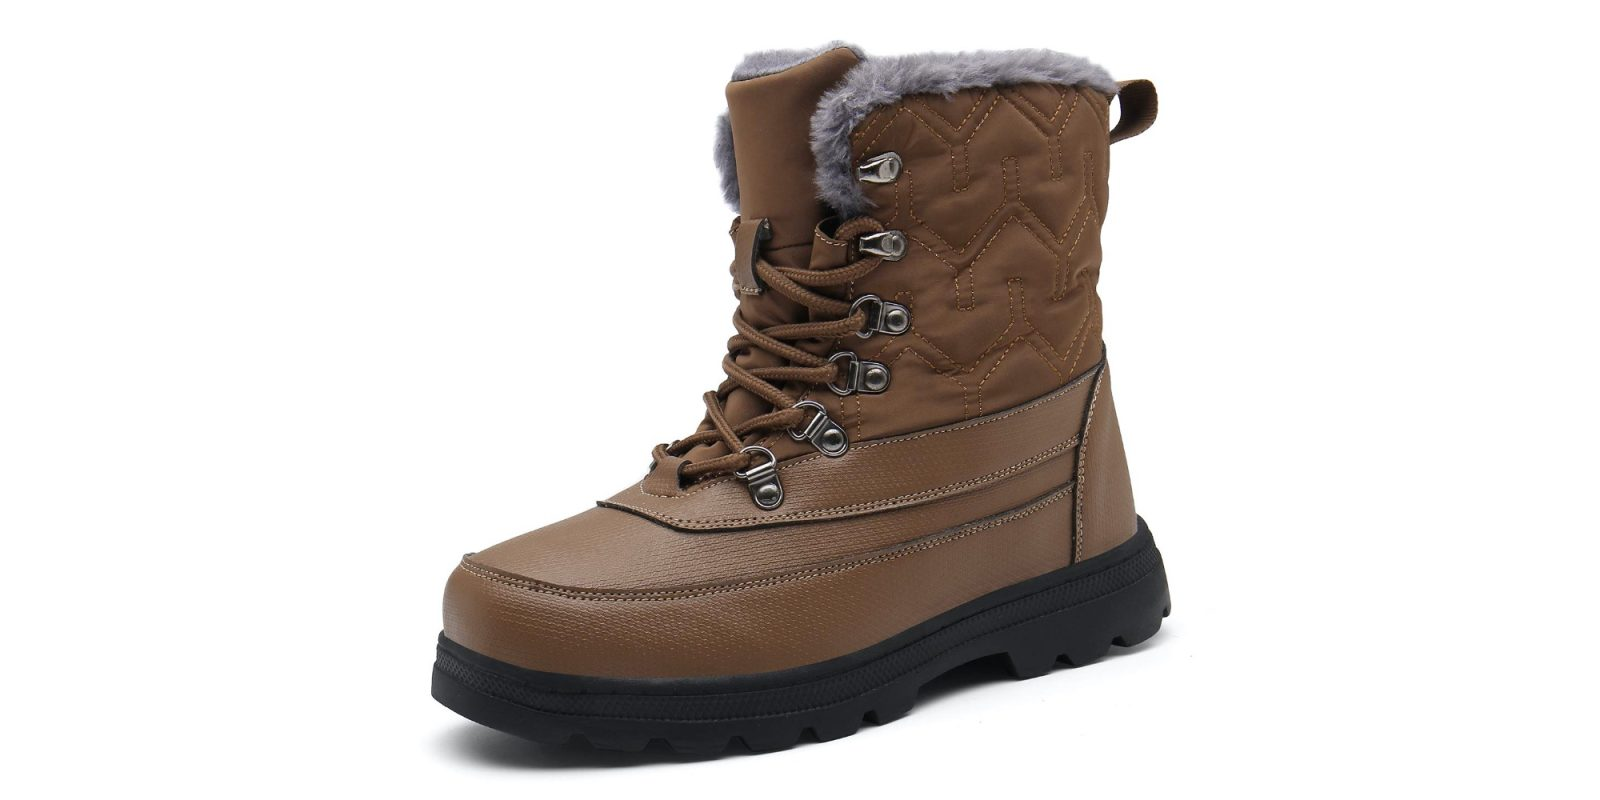 Amazon's Gold Box takes up to 45% off winter boots, women's apparel, and more